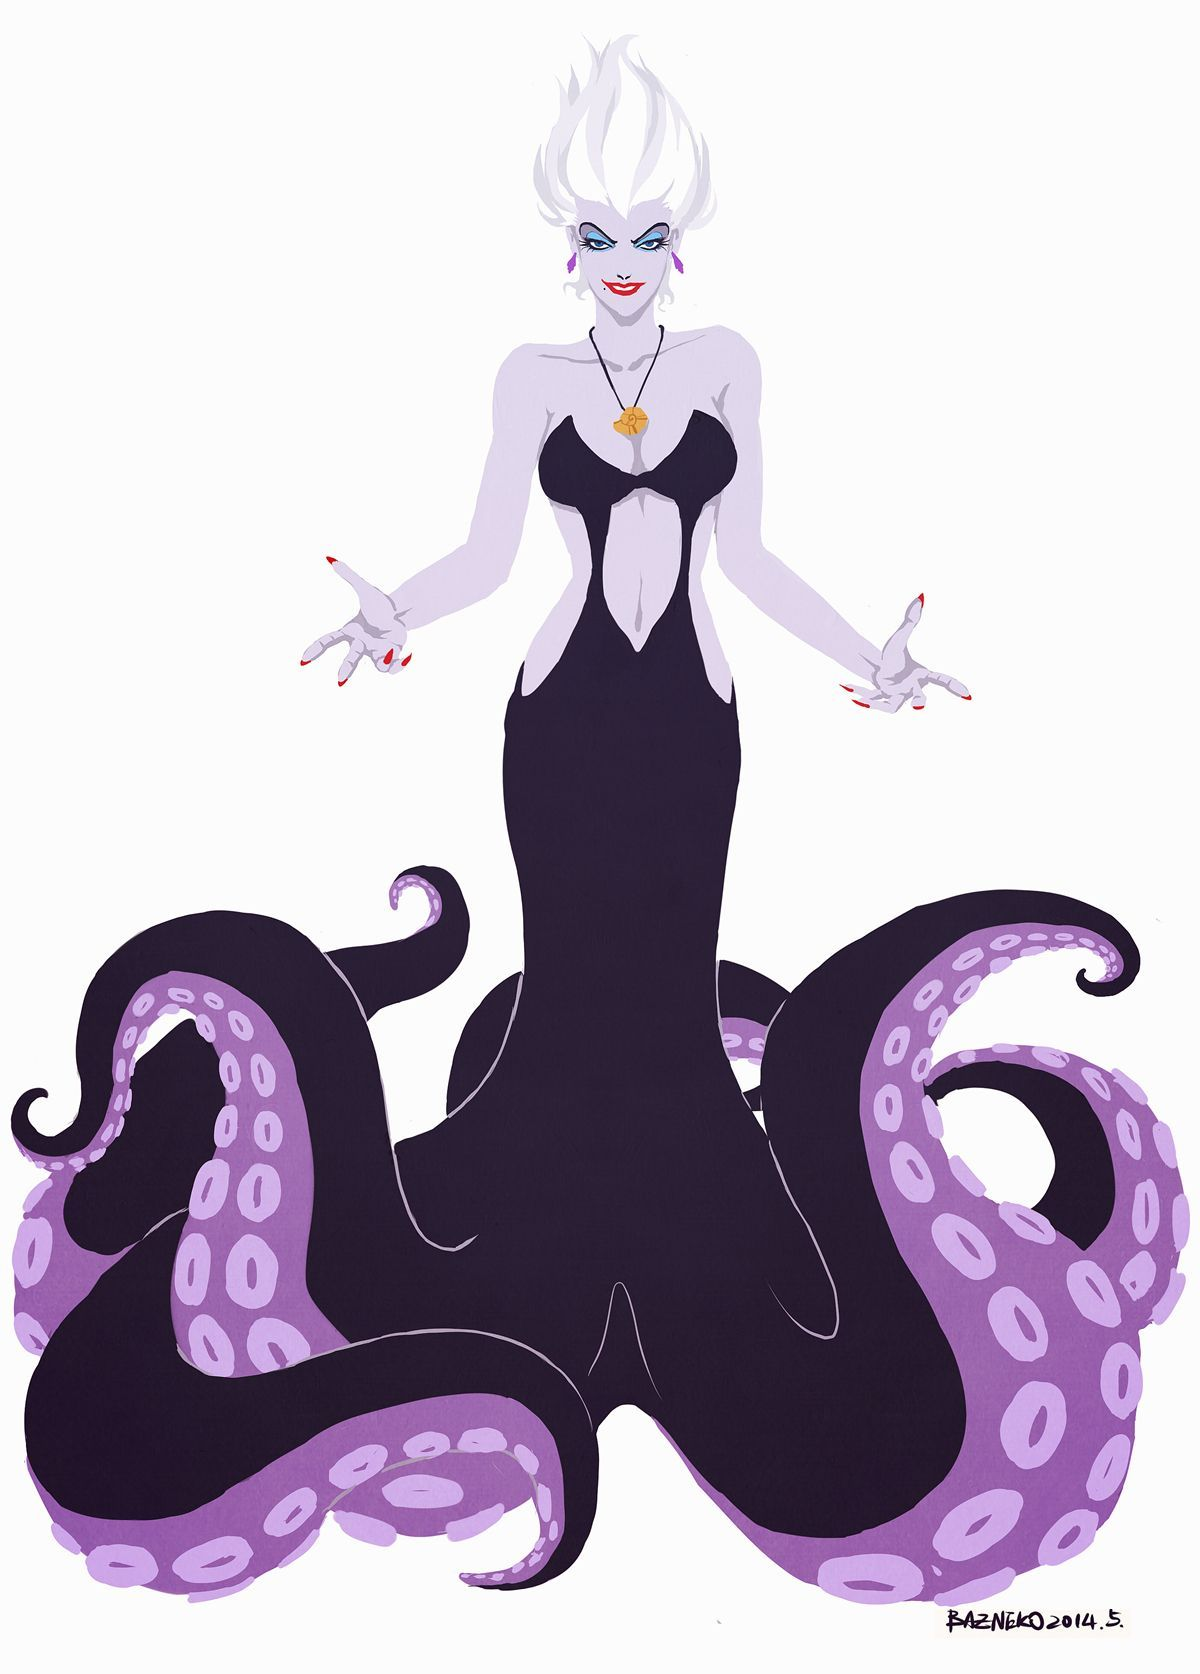 Disney Villains ºoº ºoº #disneyvillains Disney Villains ºoº ºoº #disneyvillains